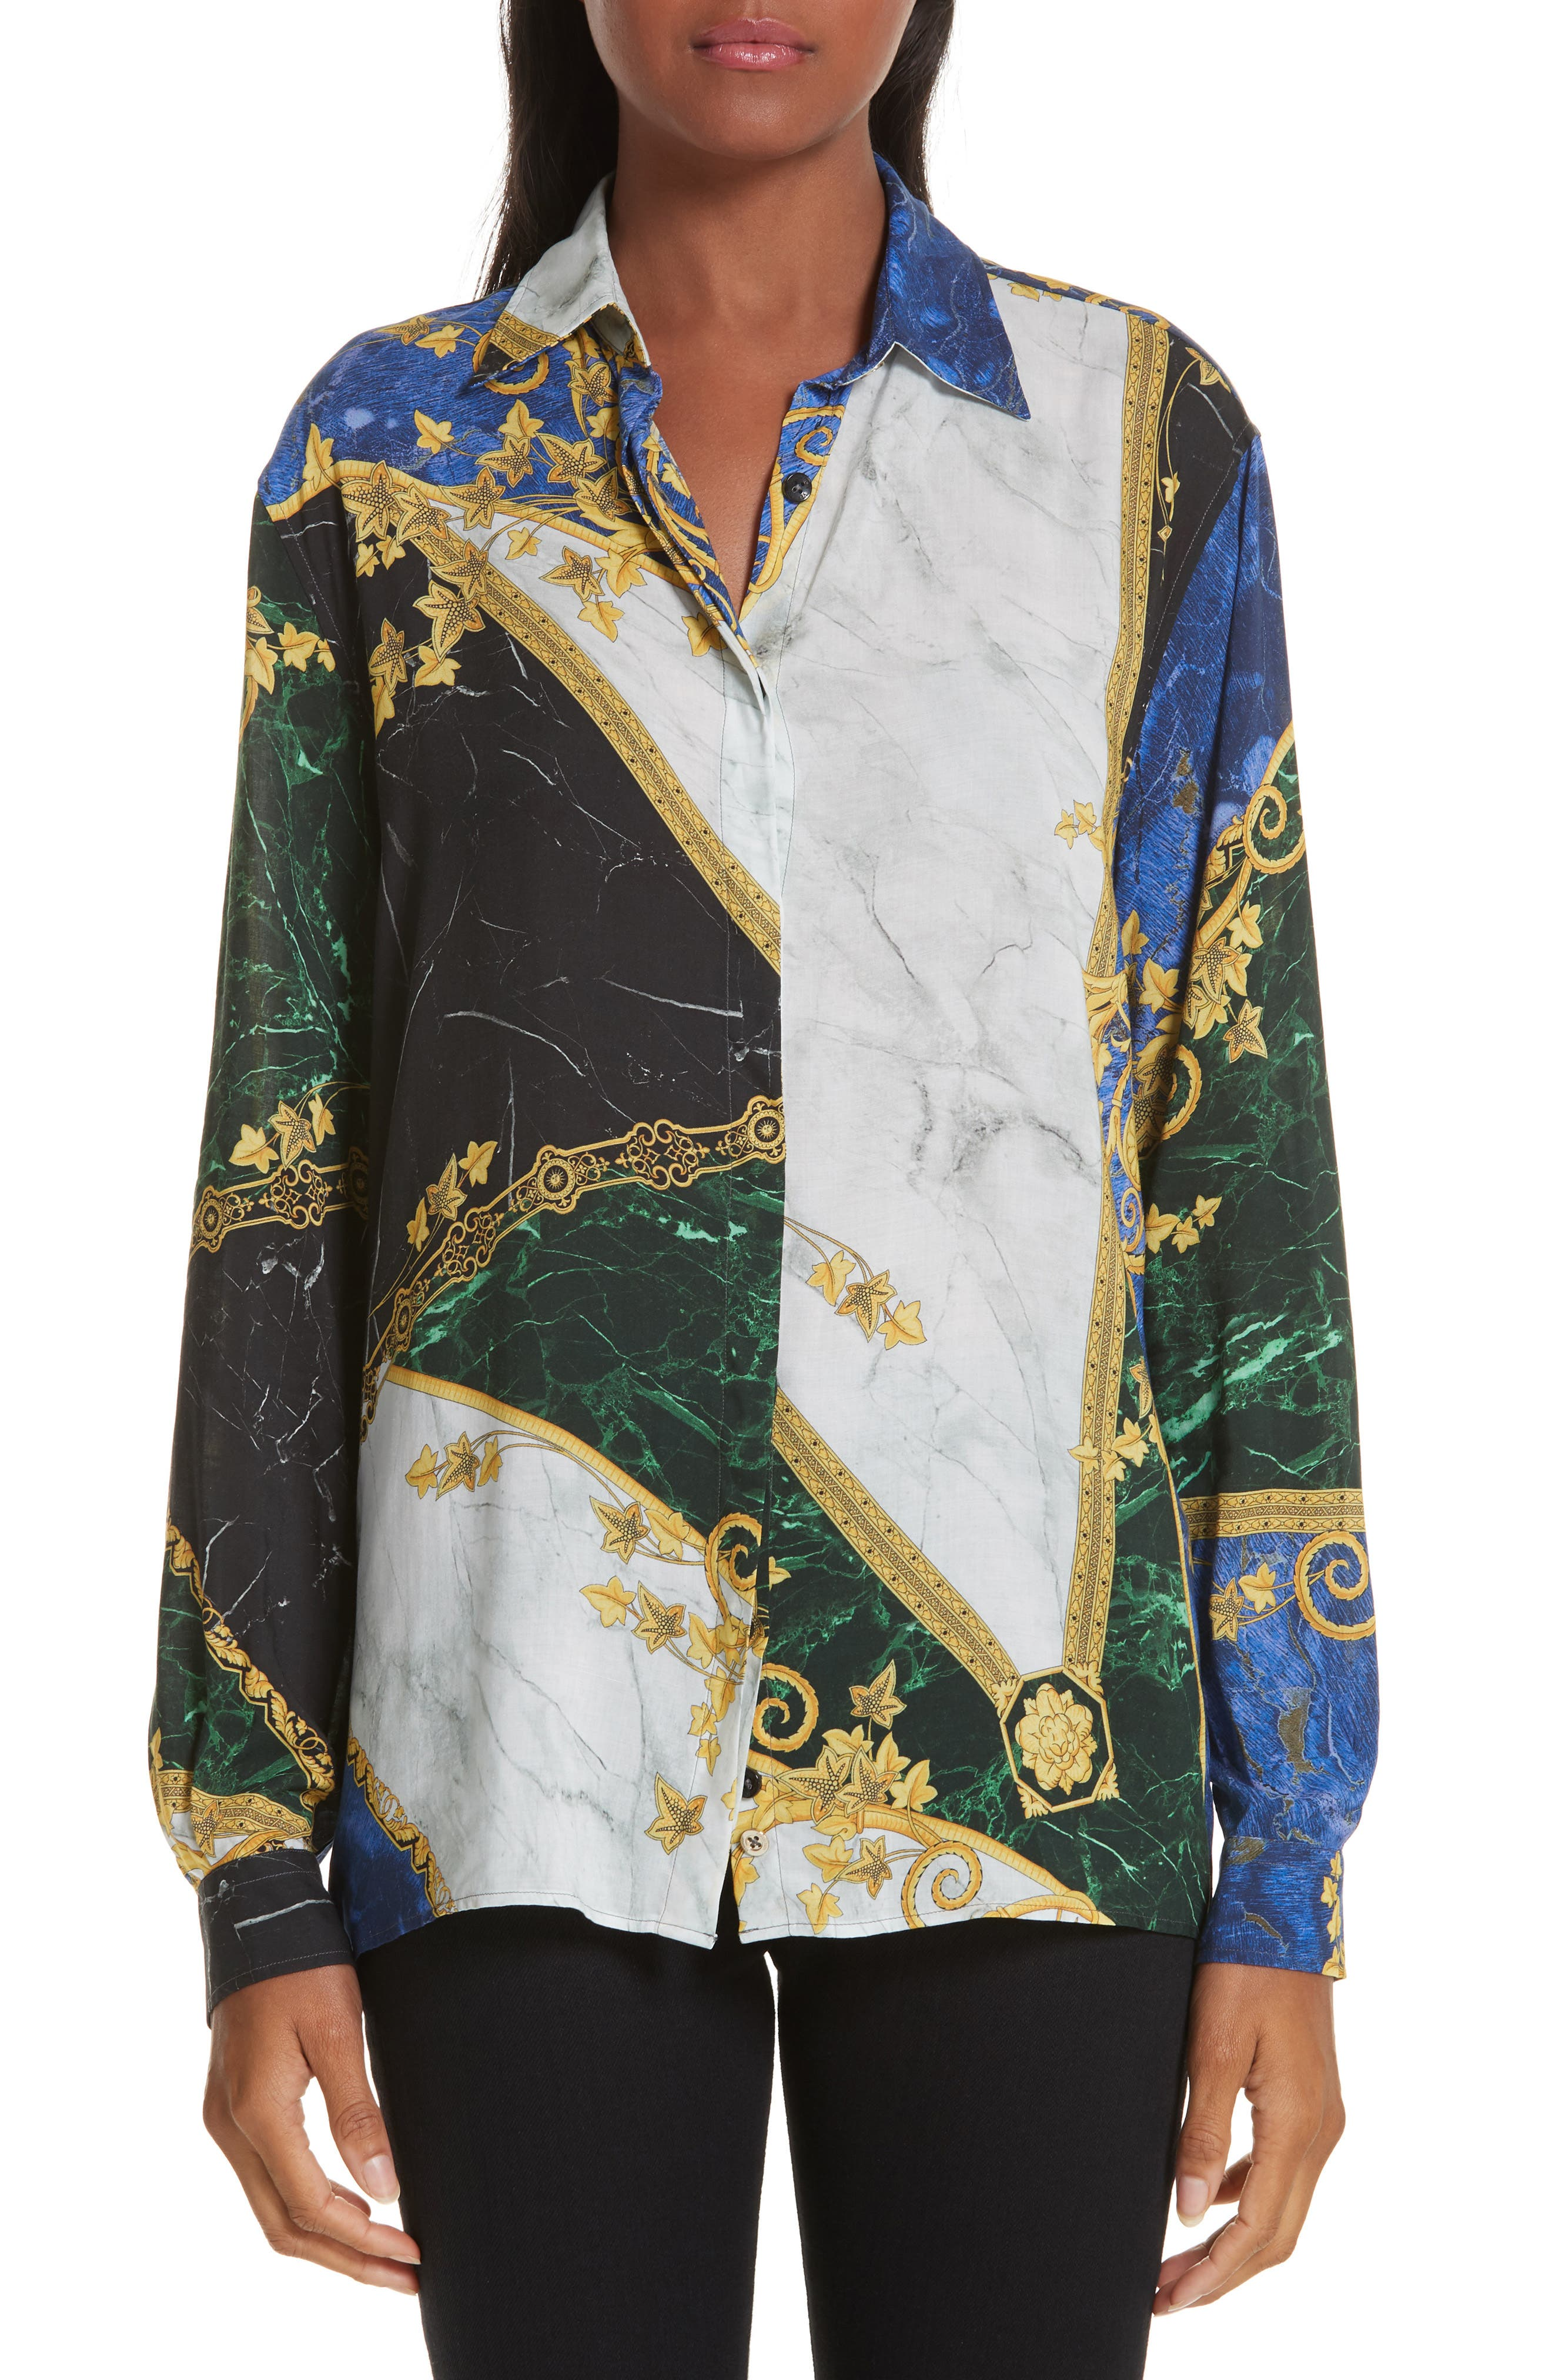 VERSACE COLLECTION, Marble Print Blouse, Main thumbnail 1, color, MULTI